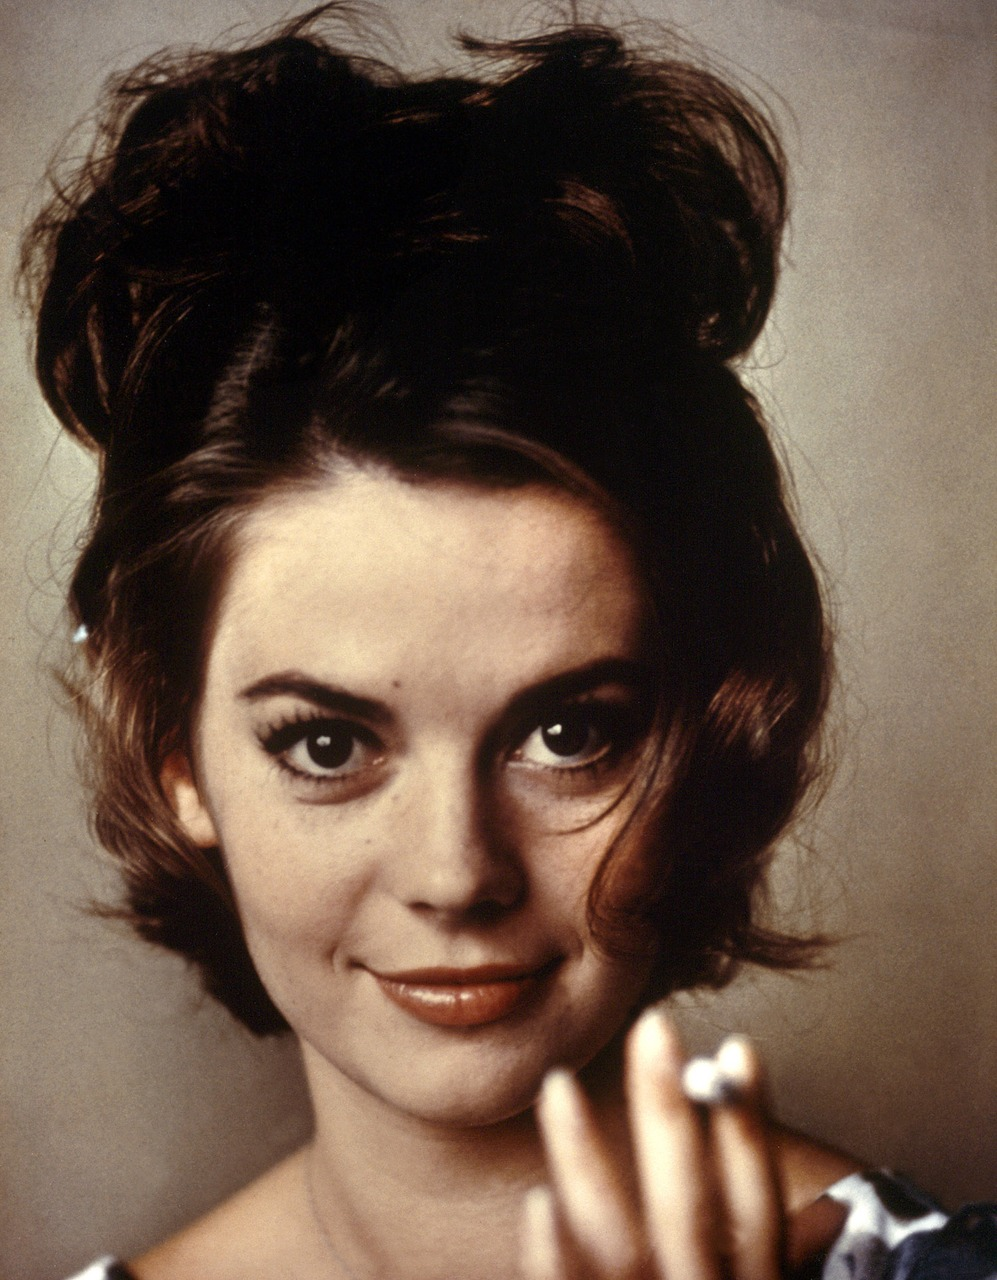 """""""You get tough in this business, until you get big enough to hire people to get tough for you. Then you can sit back and be a lady."""" -Natalie Wood"""